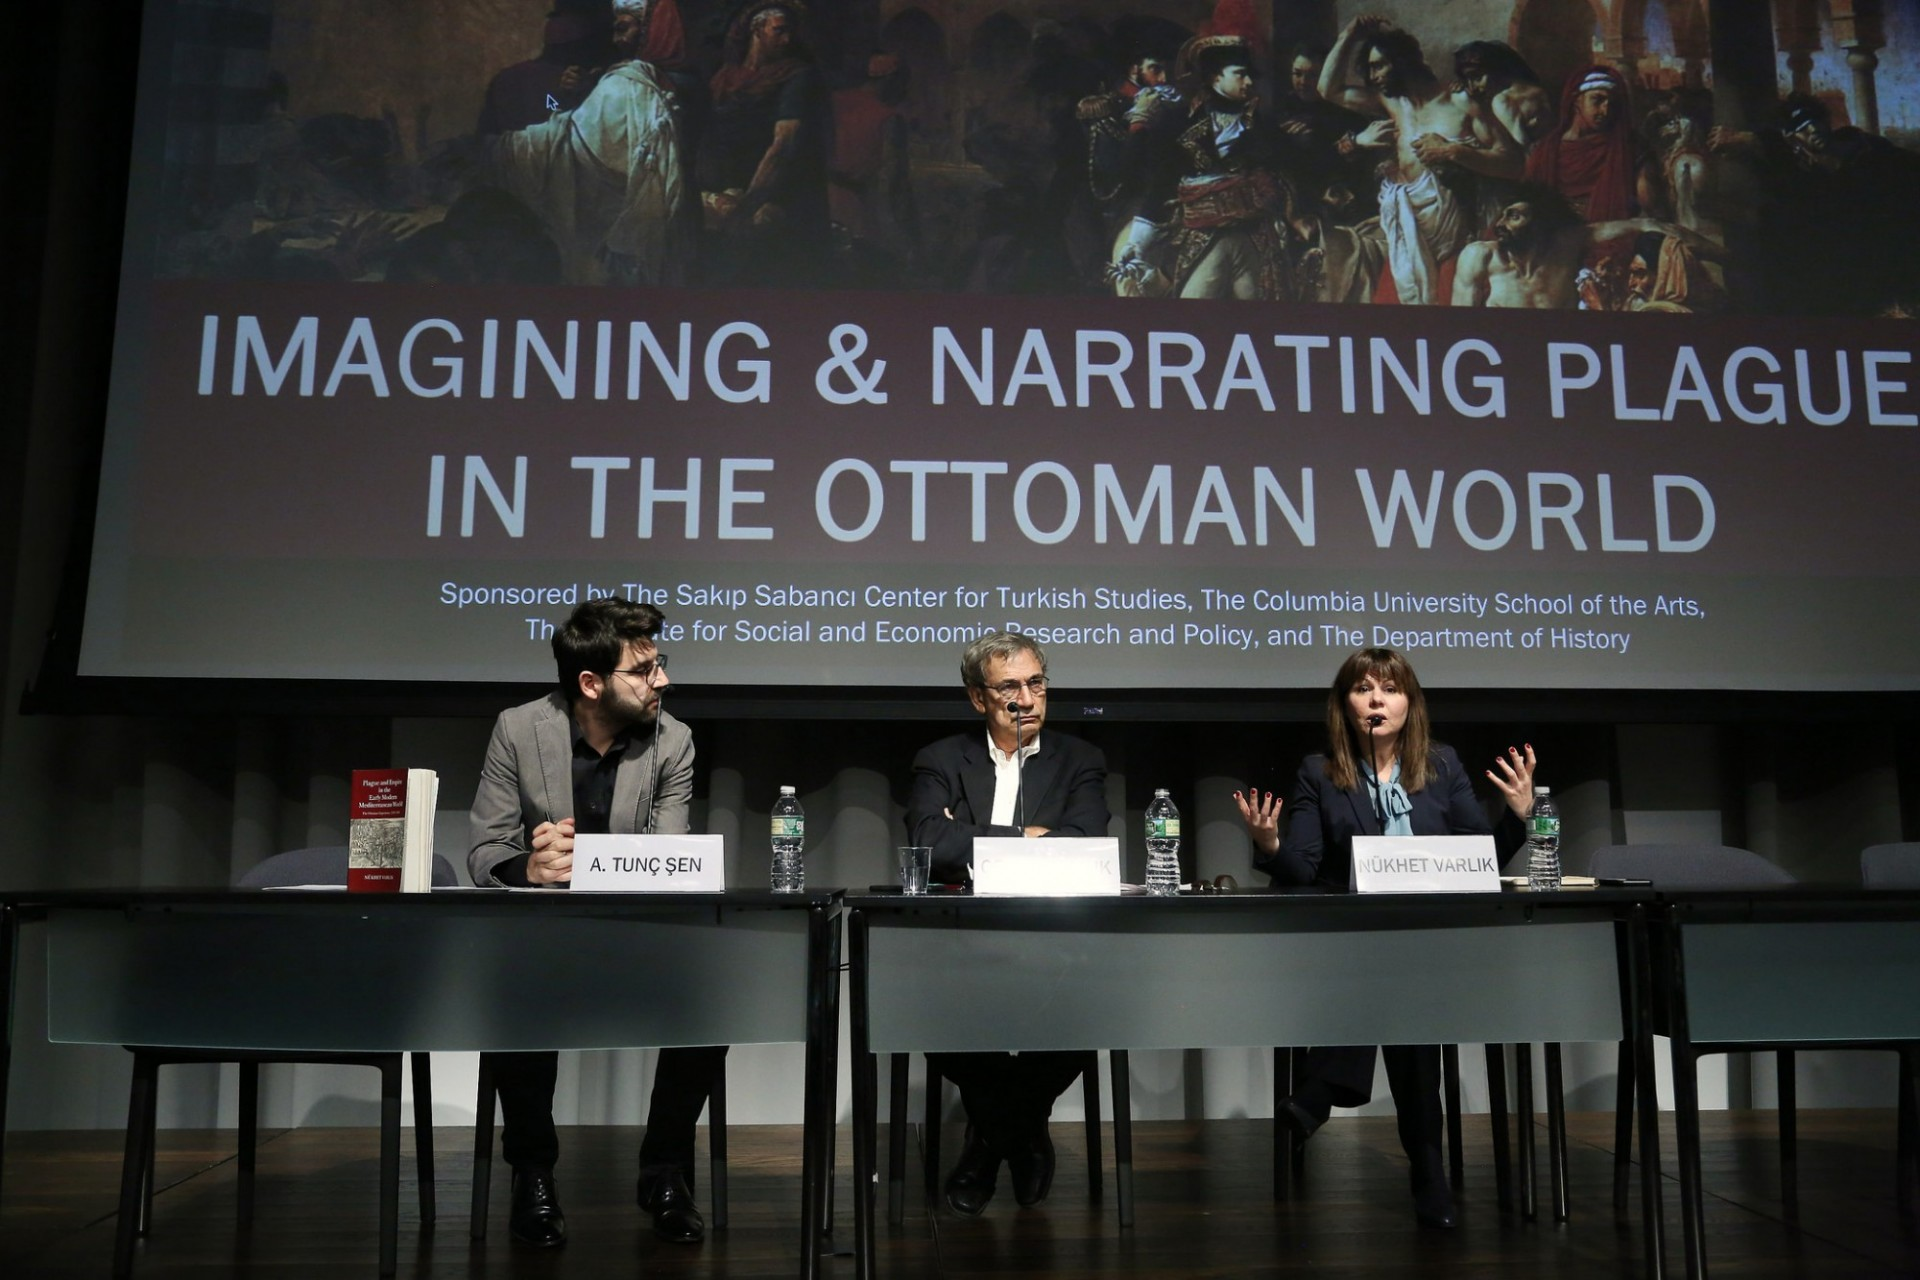 "A. Tunç Şen, Orhan Pamuk, and Nükhet Varlık speak on stage for event ""Imagining and Narrating Plague in the Ottoman World"""